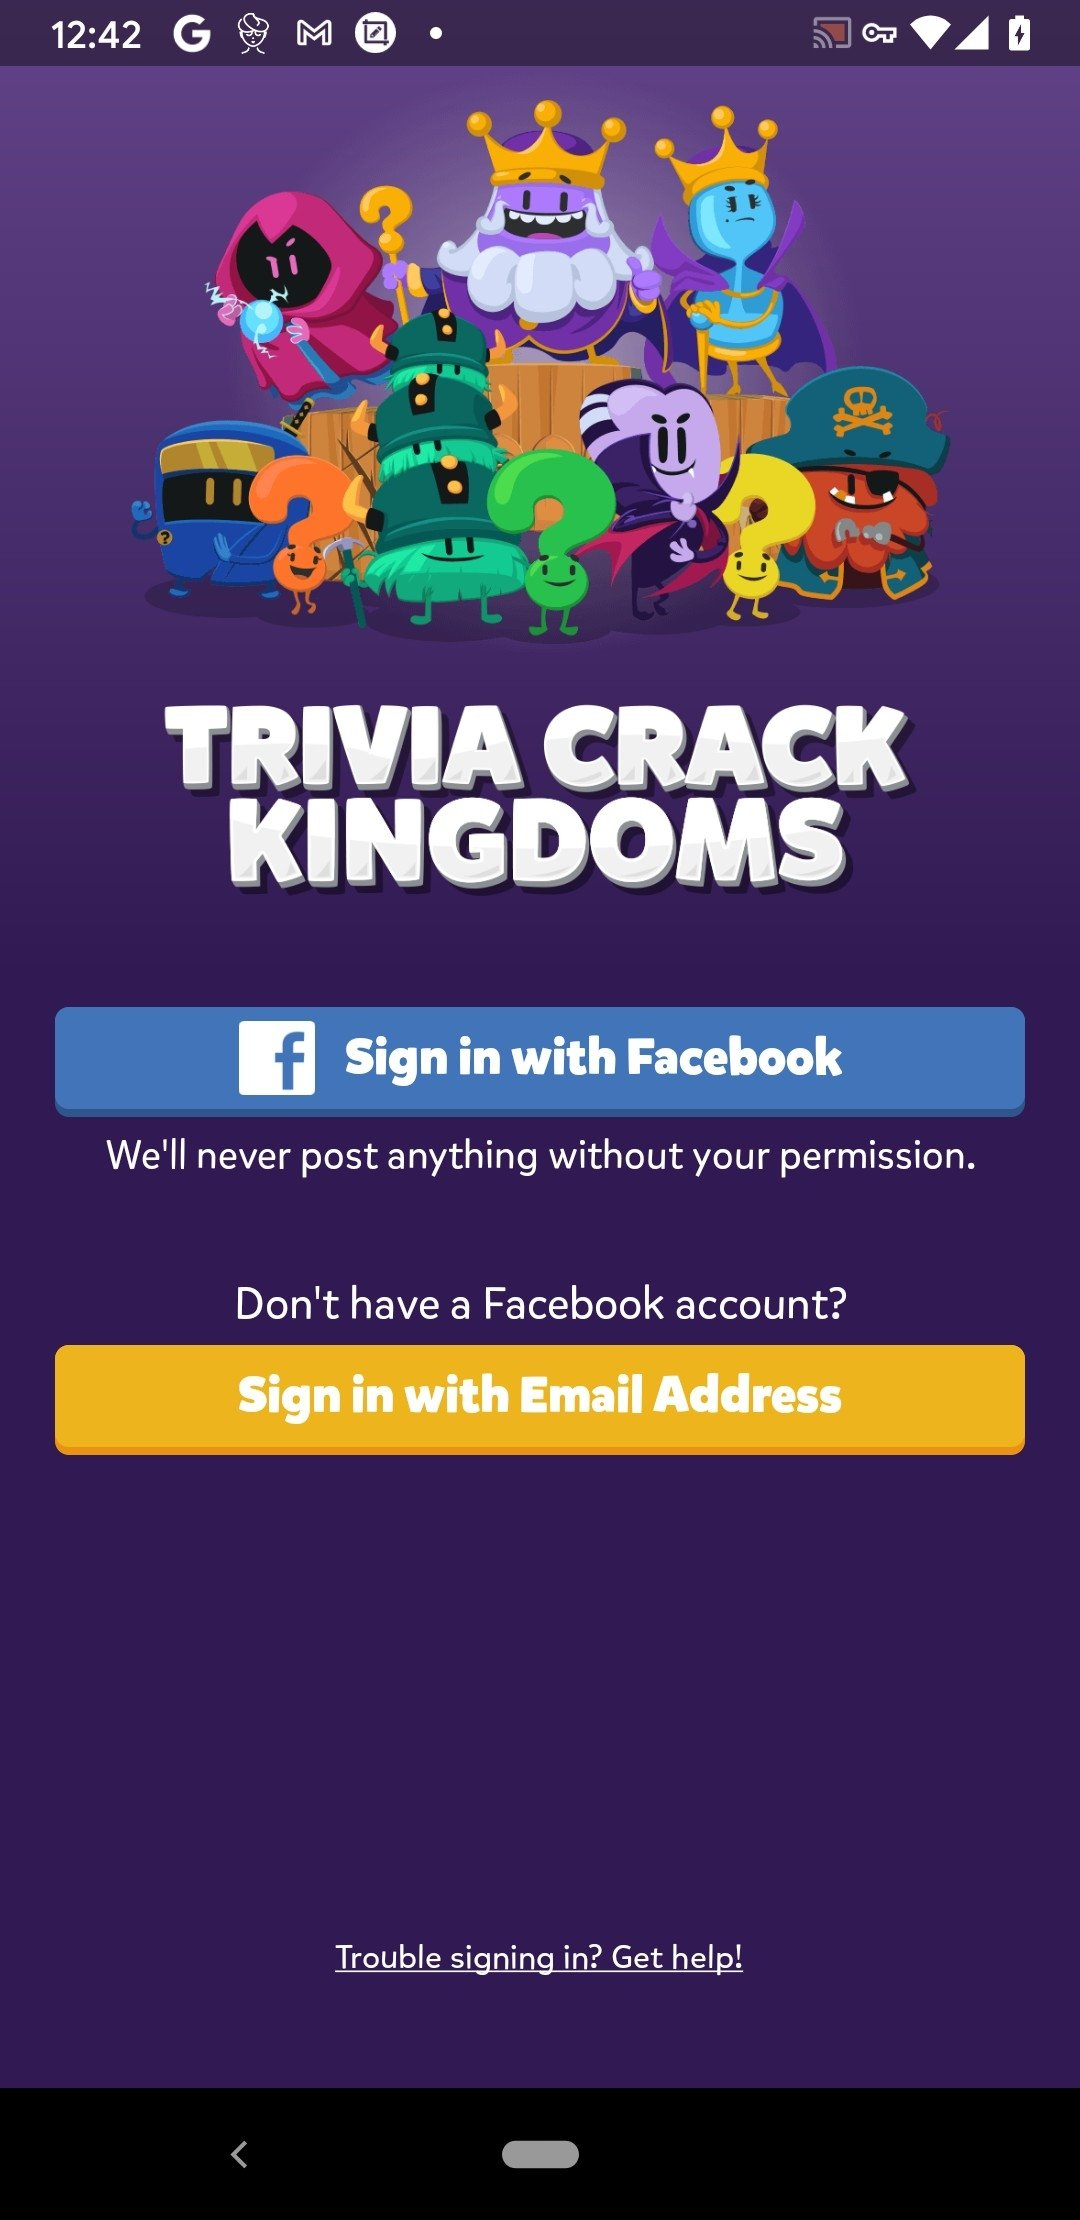 Trivia Crack Kingdoms Android image 8